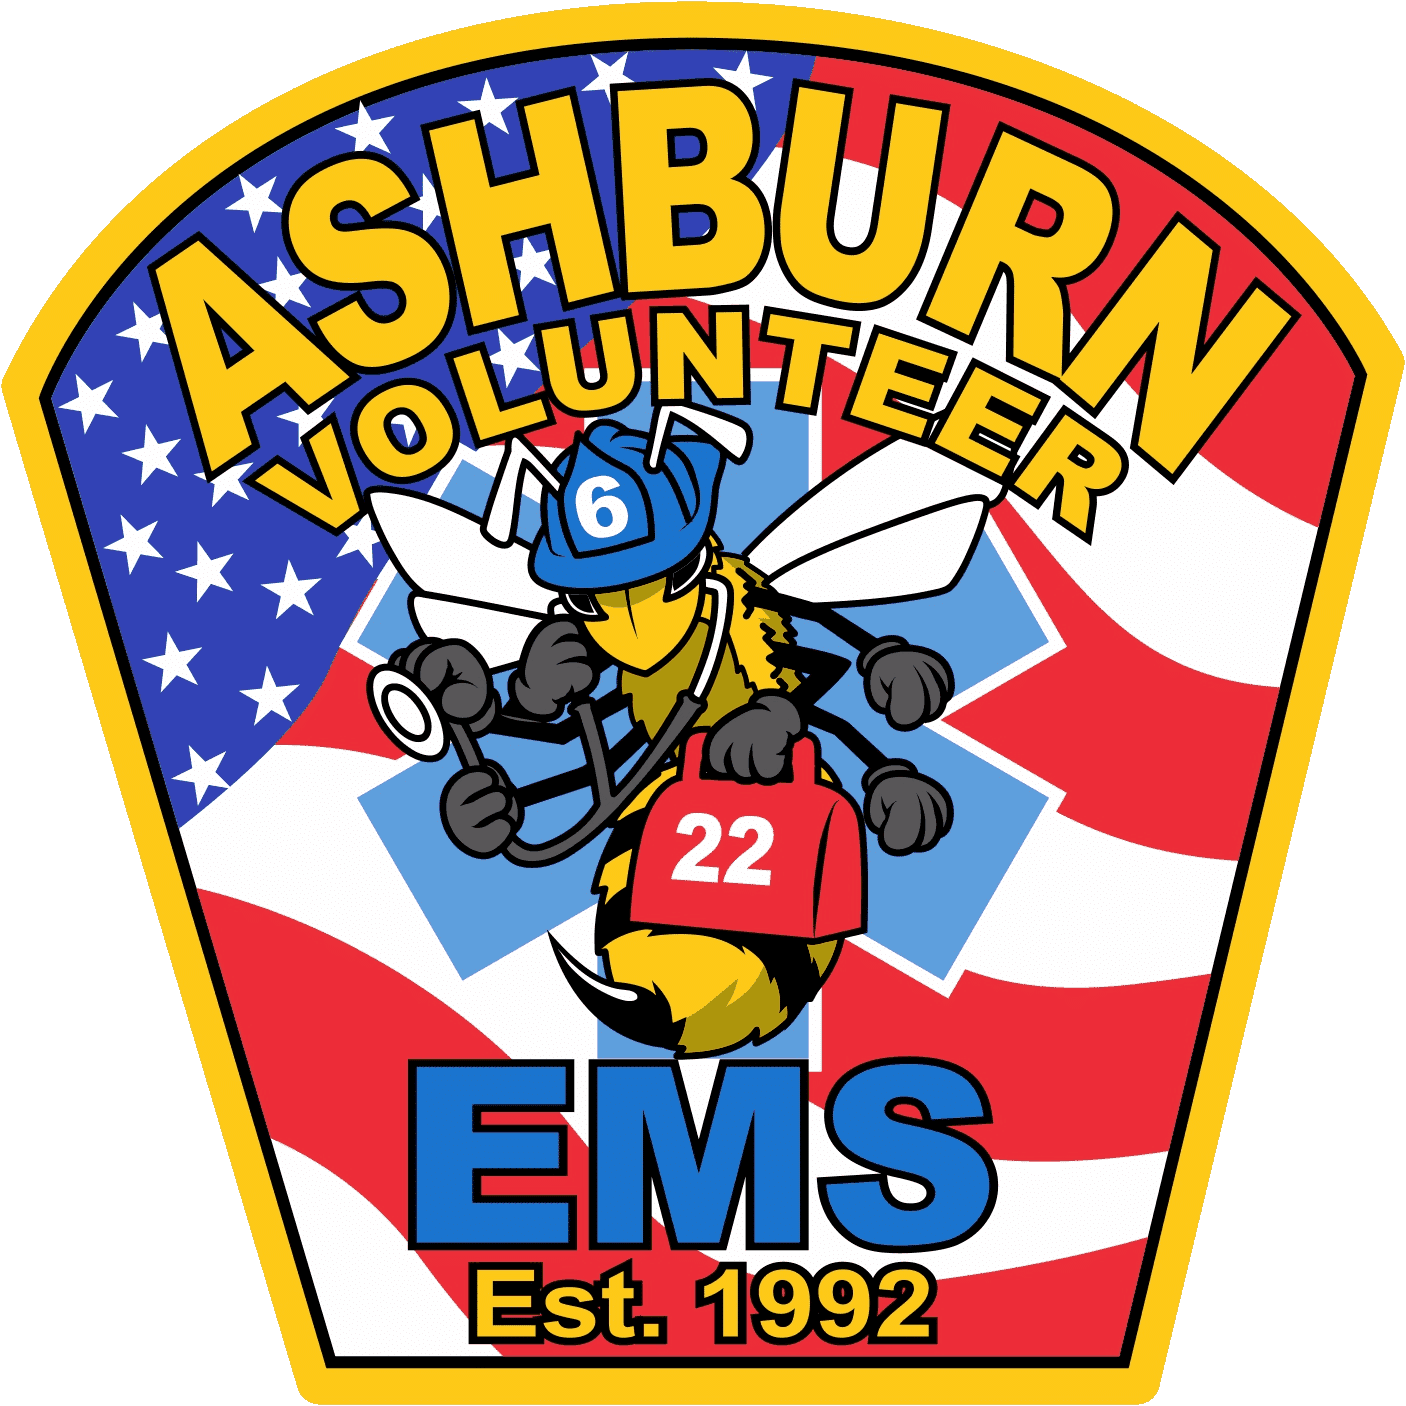 Ashburn Fire Rescue EMS Patch 2016